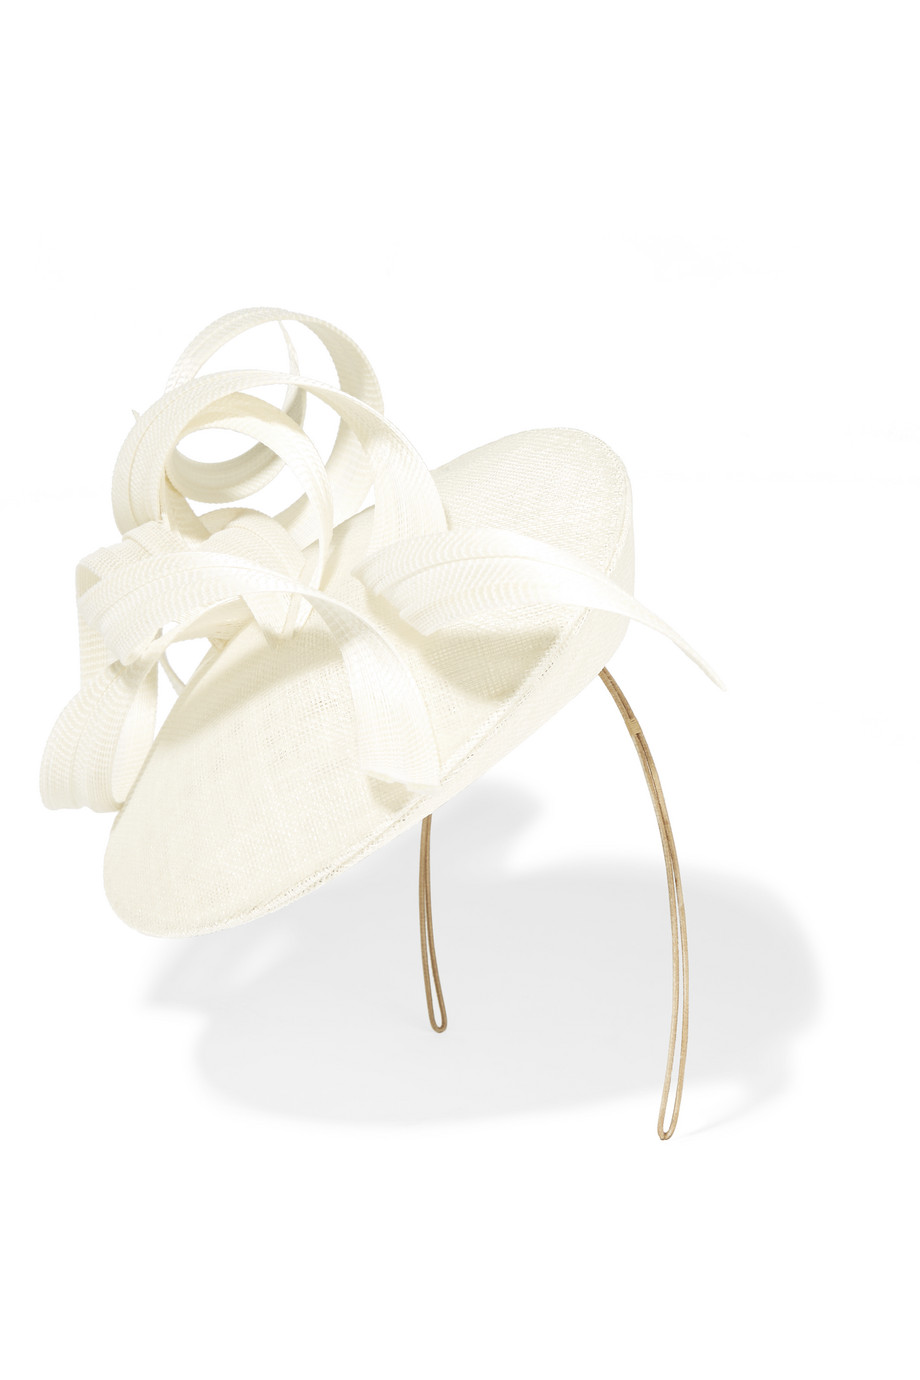 Philip Treacy Sinamay and Buntal Straw Headpiece, Cream, Women's